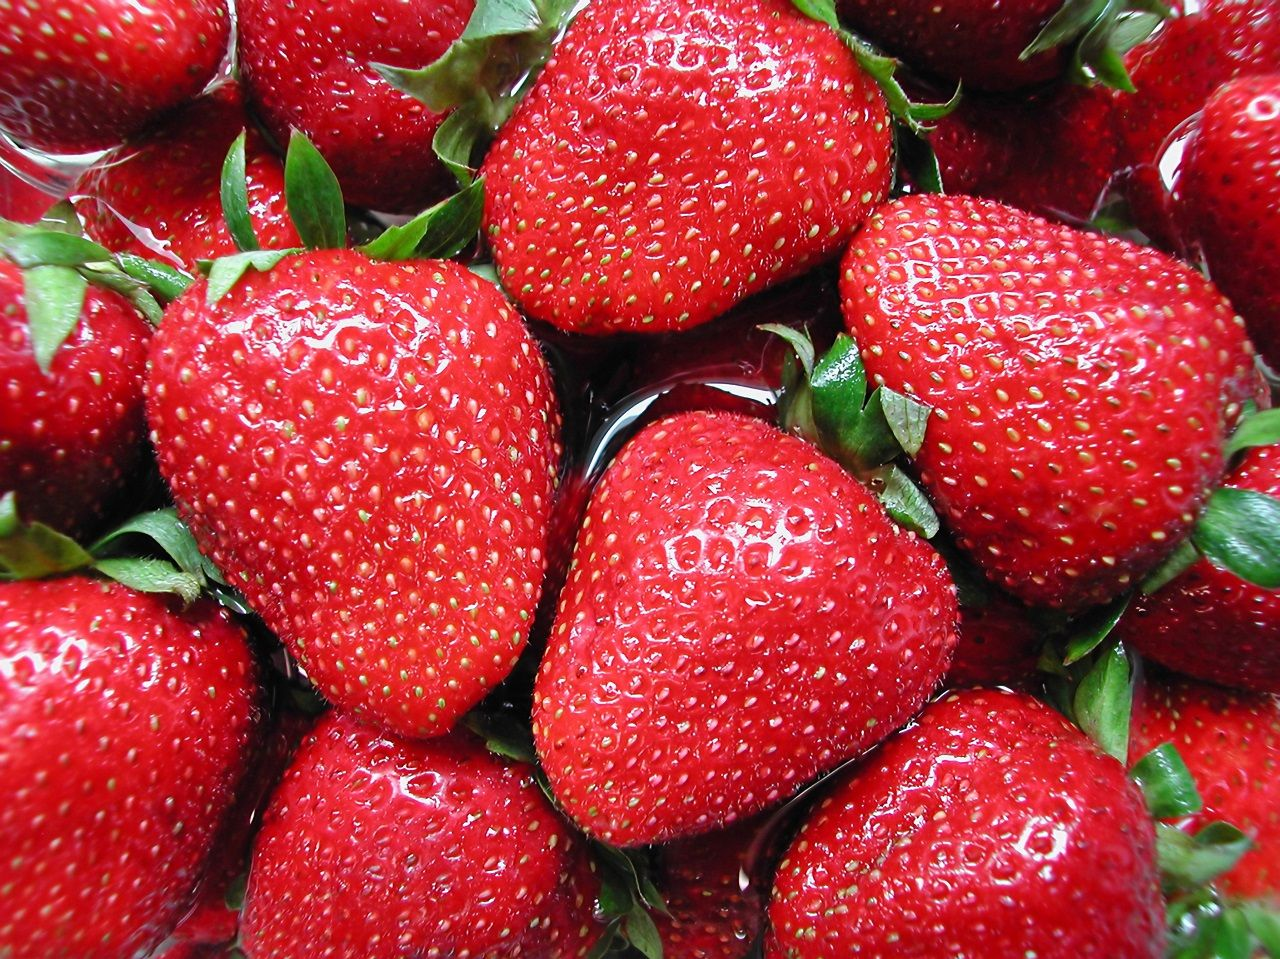 Fresh strawberries are in season now. Look for plump, well